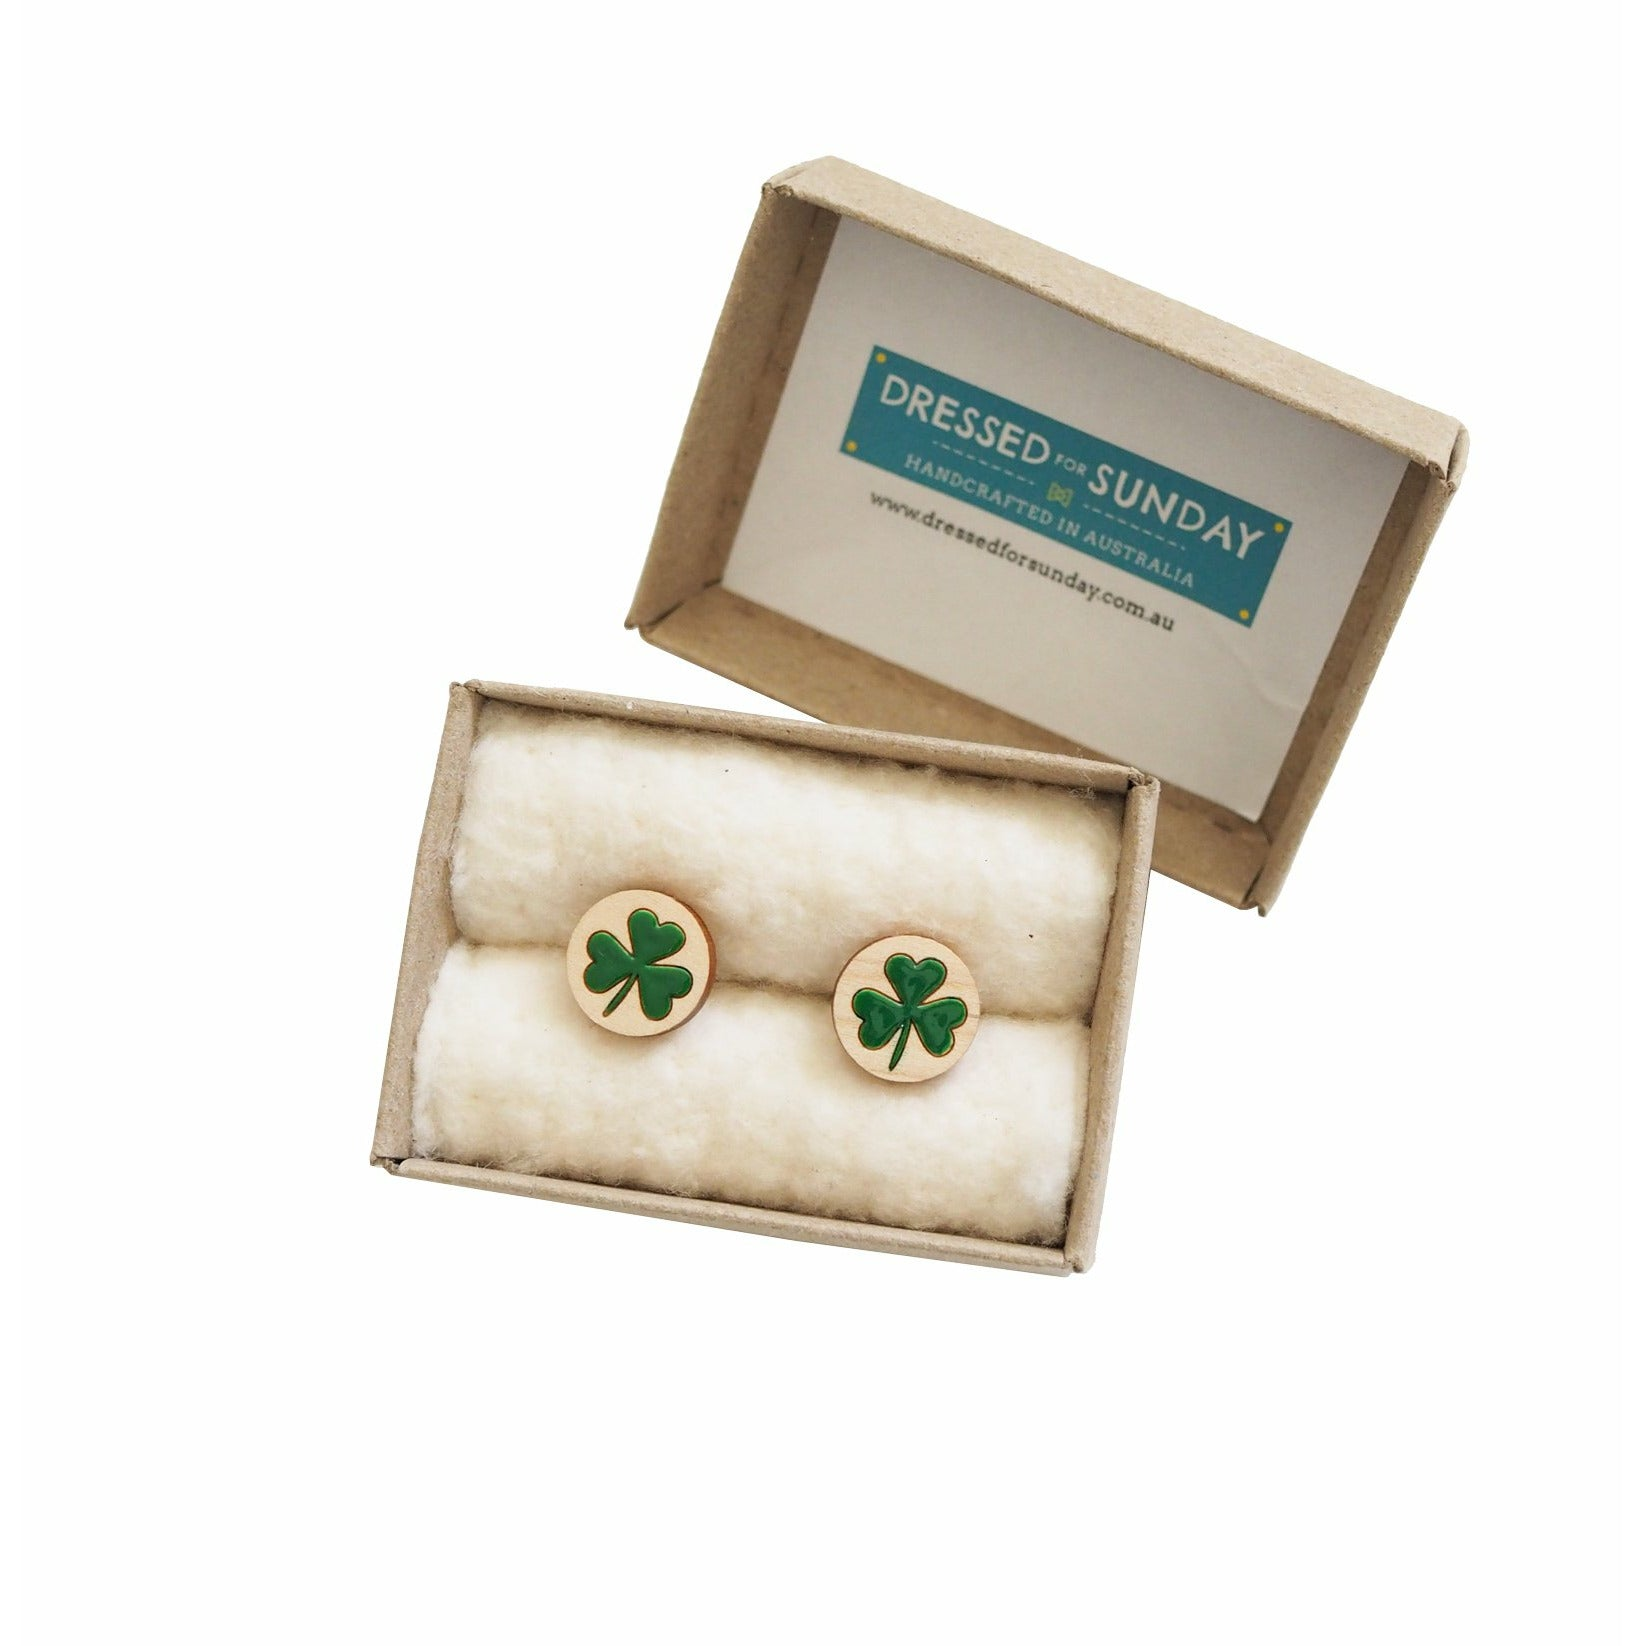 Dressed for Sunday Cufflinks Shamrock Green Handpainted Vintage Inspired Canberra Handmade for the Dapper Gent